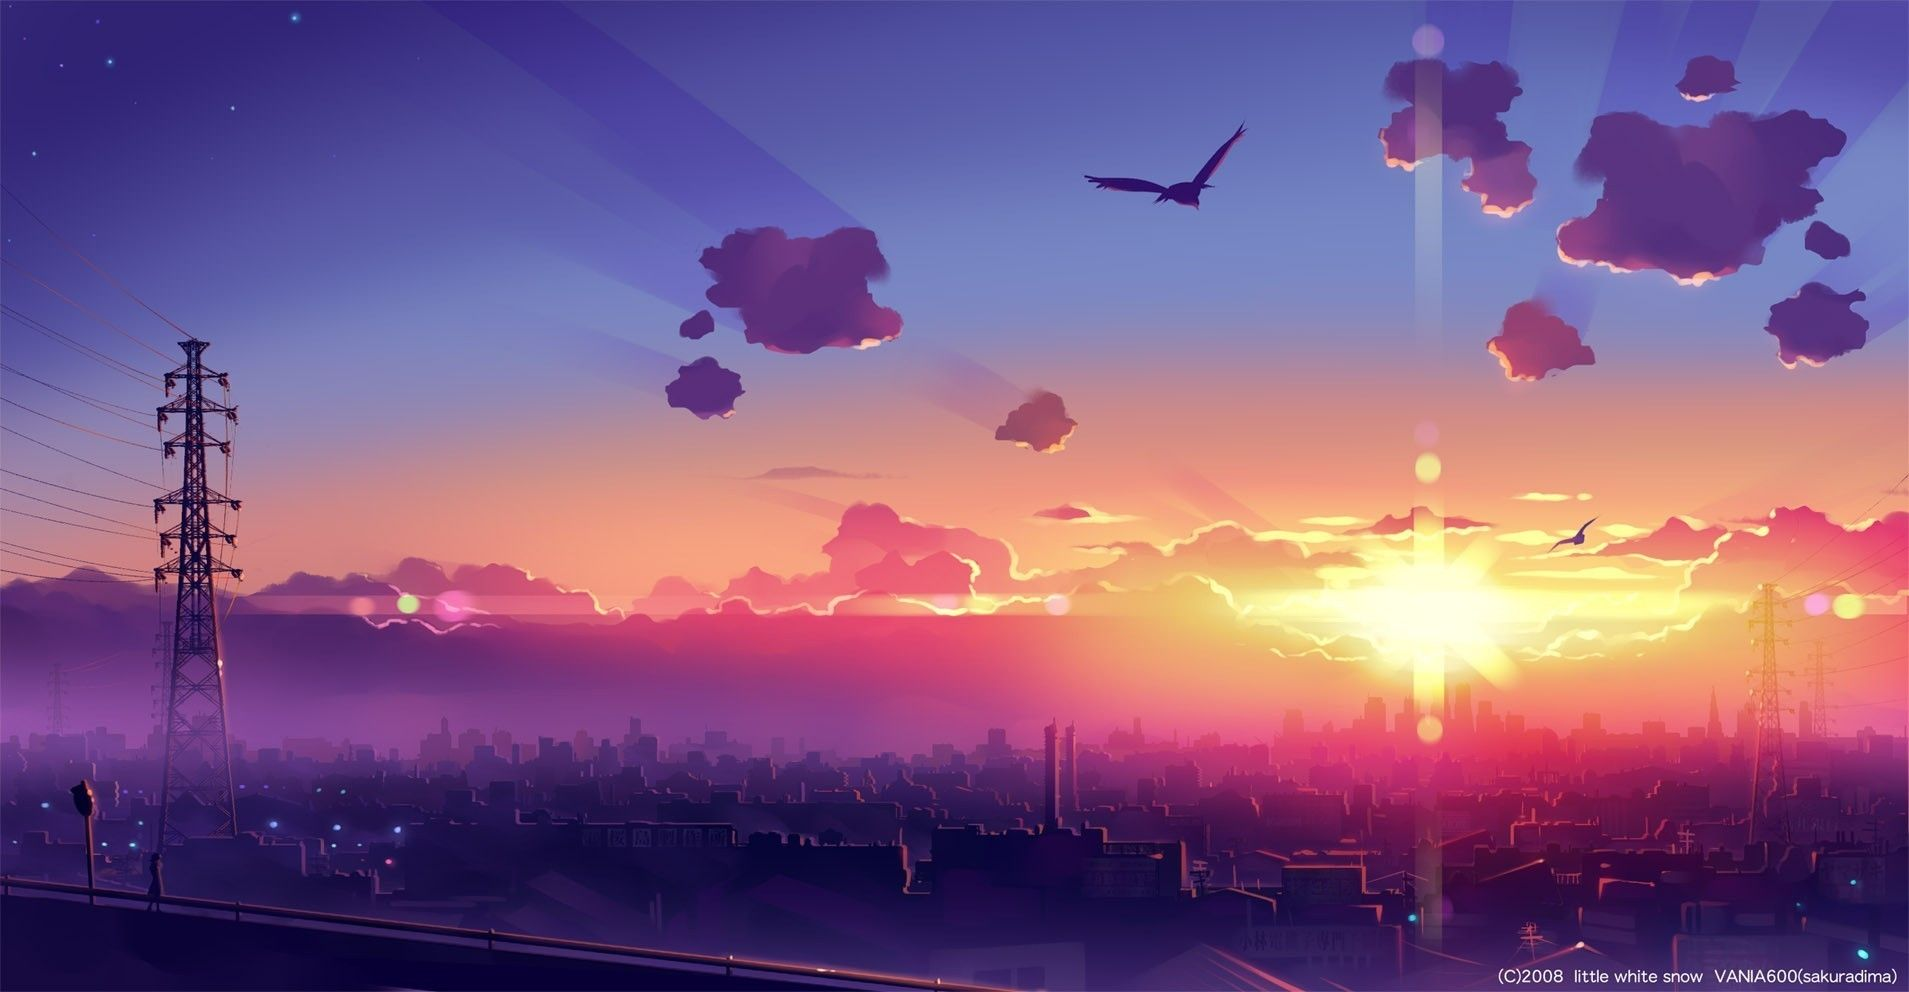 Vania600 Birds Cities Clouds Dawn Wallpaper 886225 Wallbase